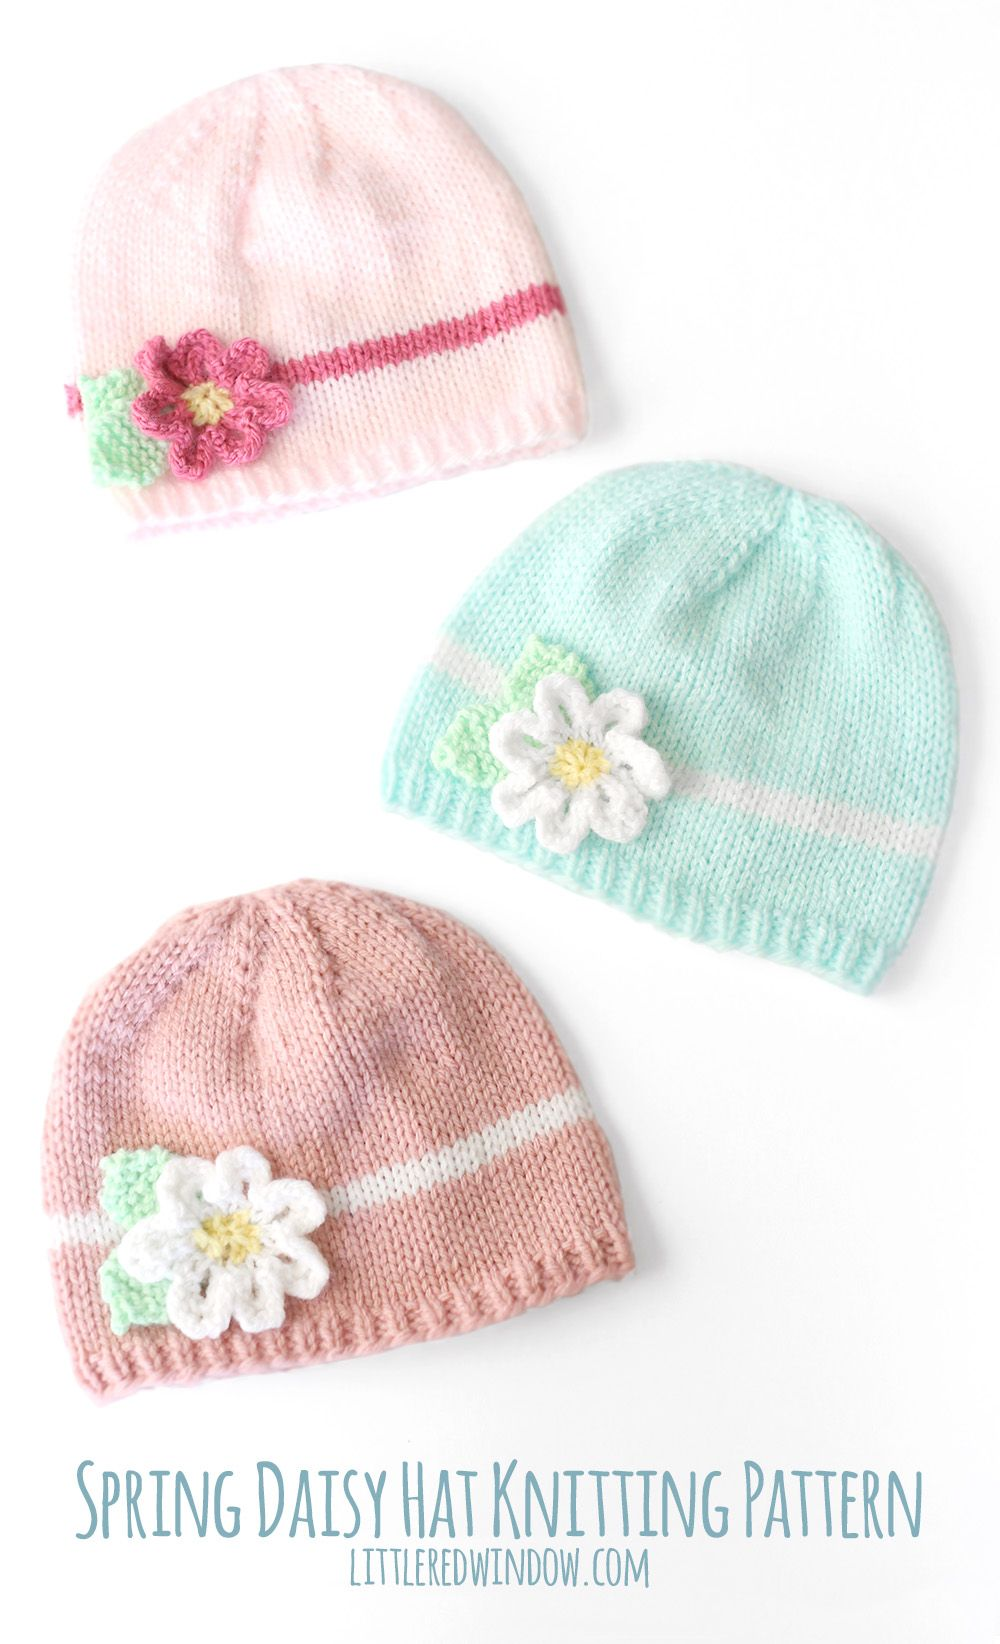 Spring daisy hat knitting pattern knitting patterns patterns spring daisy hat knitting pattern bankloansurffo Image collections